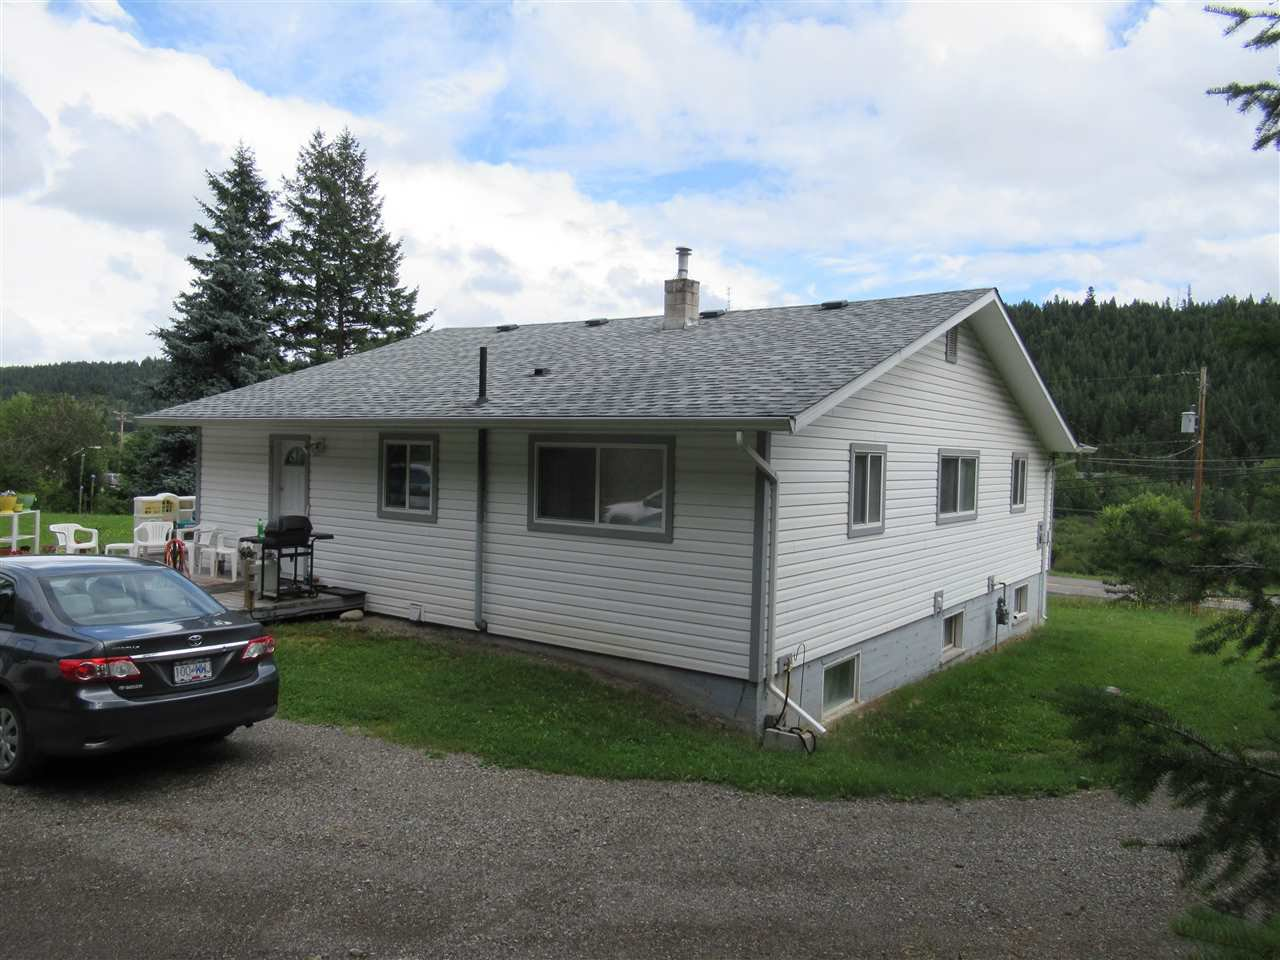 Photo 20: Photos: 3035 FIRDALE Drive in Williams Lake: Williams Lake - Rural North House for sale (Williams Lake (Zone 27))  : MLS®# R2484738